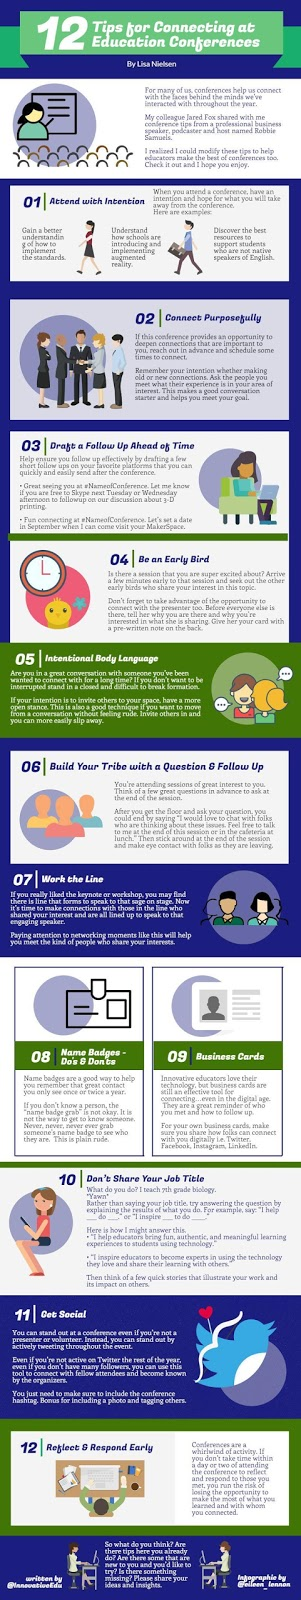 12 Tips for Connecting at Education Conferences - Infographic